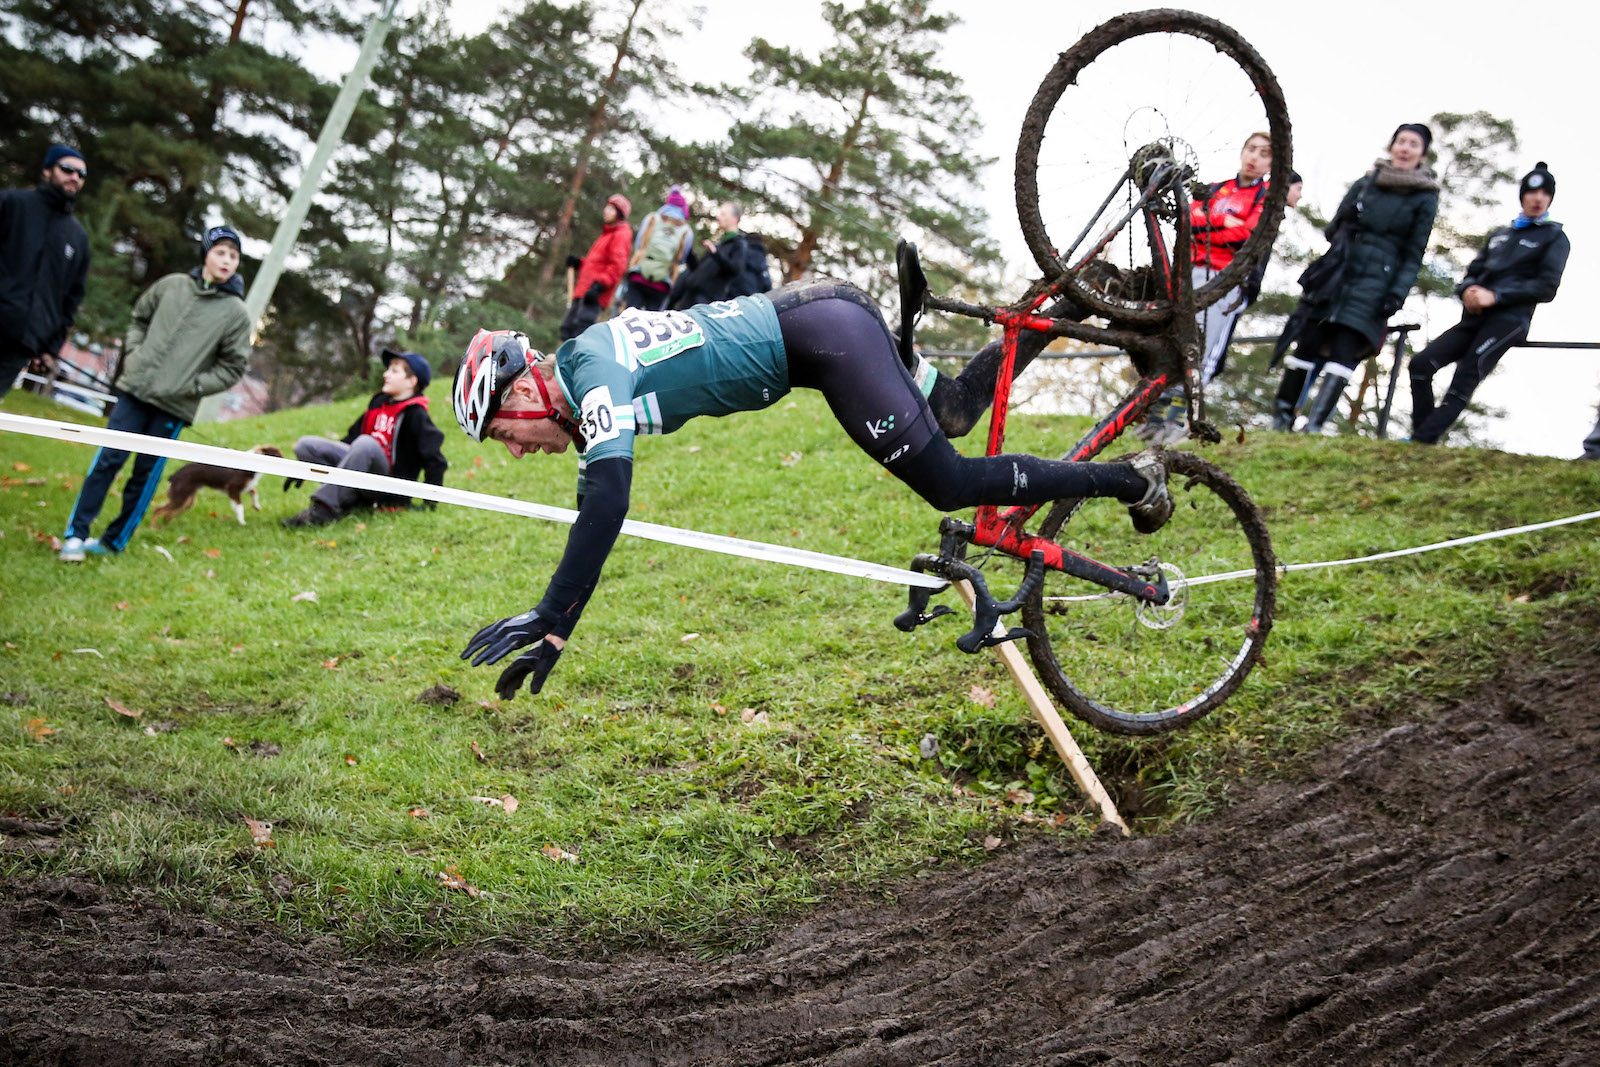 """Paul Schwartz, Canada. """"At the 2015 Quebec Provincial Cyclocross Championships, this rider went a bit too far off the line while trying to avoid the muddy and rutted descent, only to hit a hole, sending him flying. Amazingly, he didn't break body or bike and actually finished the race. I've purposefully worked on keeping the camera shooting during crashes over the past few years, it's difficult not to flinch, but it's yielded some epic shots -- a good skill to hone!"""" DSLR. @pss999"""